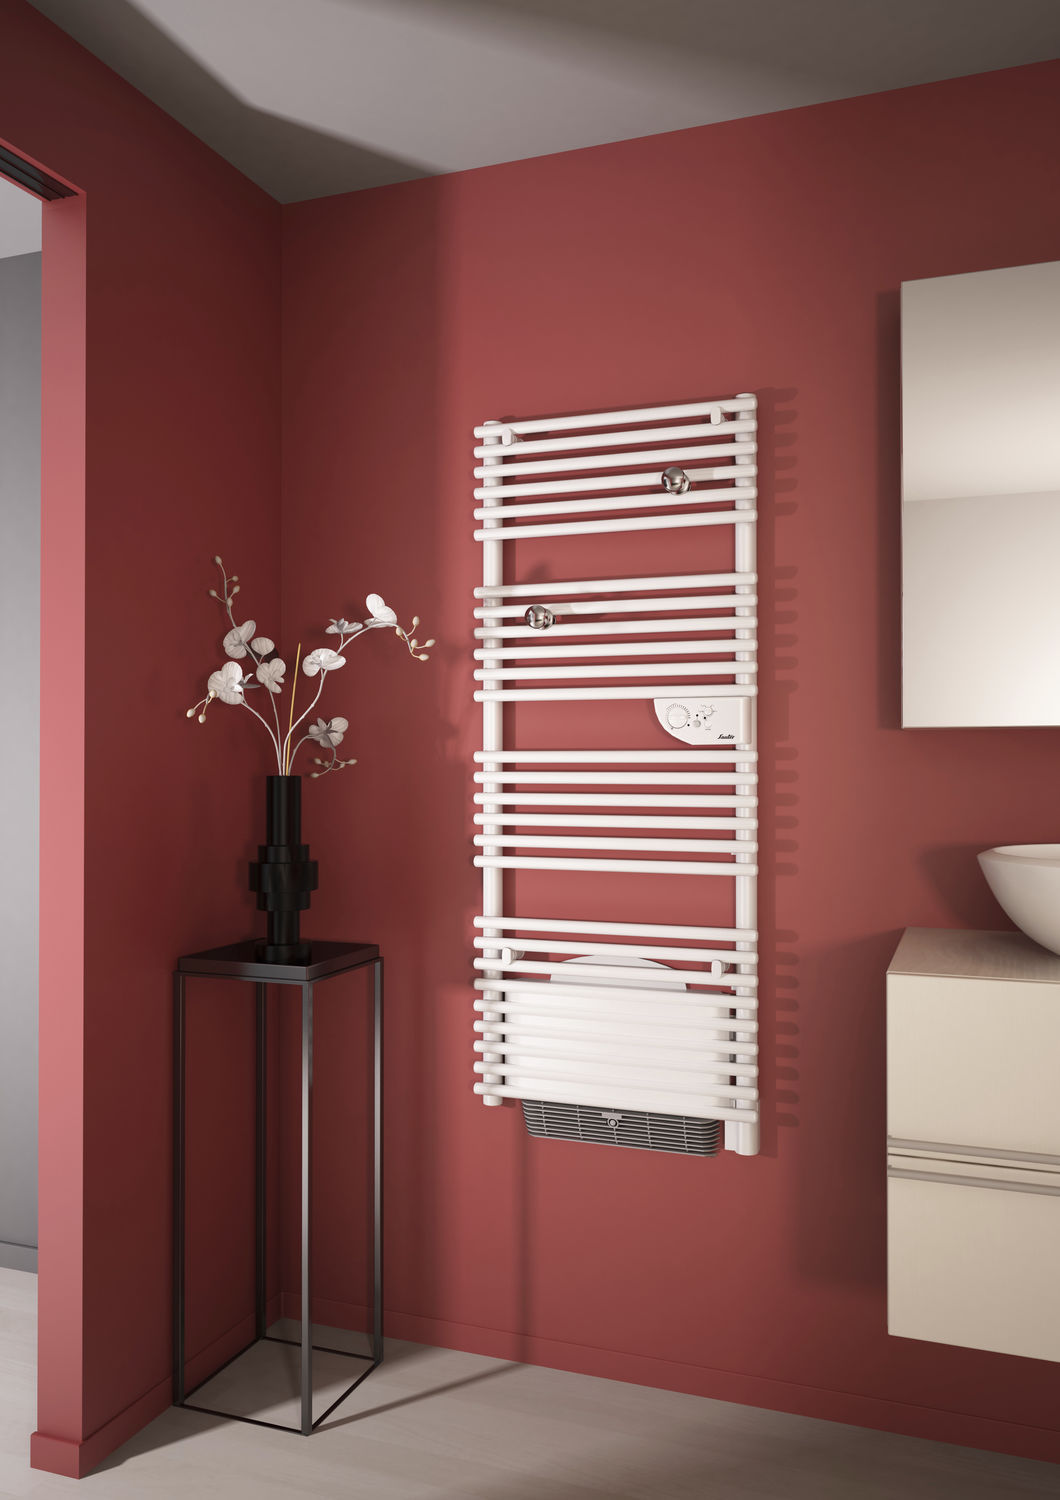 Sauter Venise Pivotant Electric Towel Radiator Thermal Fluid Metal Contemporary